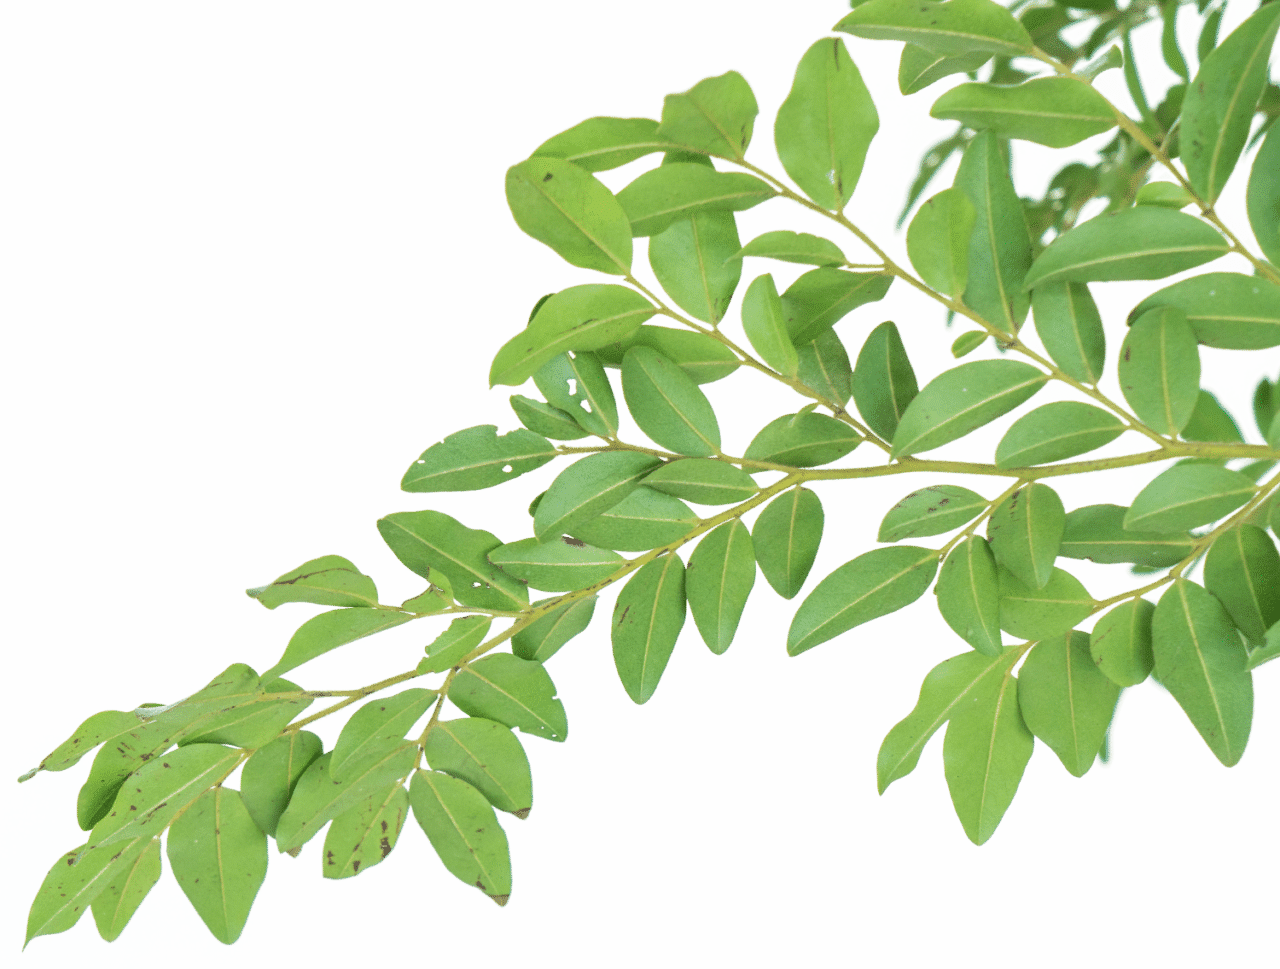 leaf-with-white-background